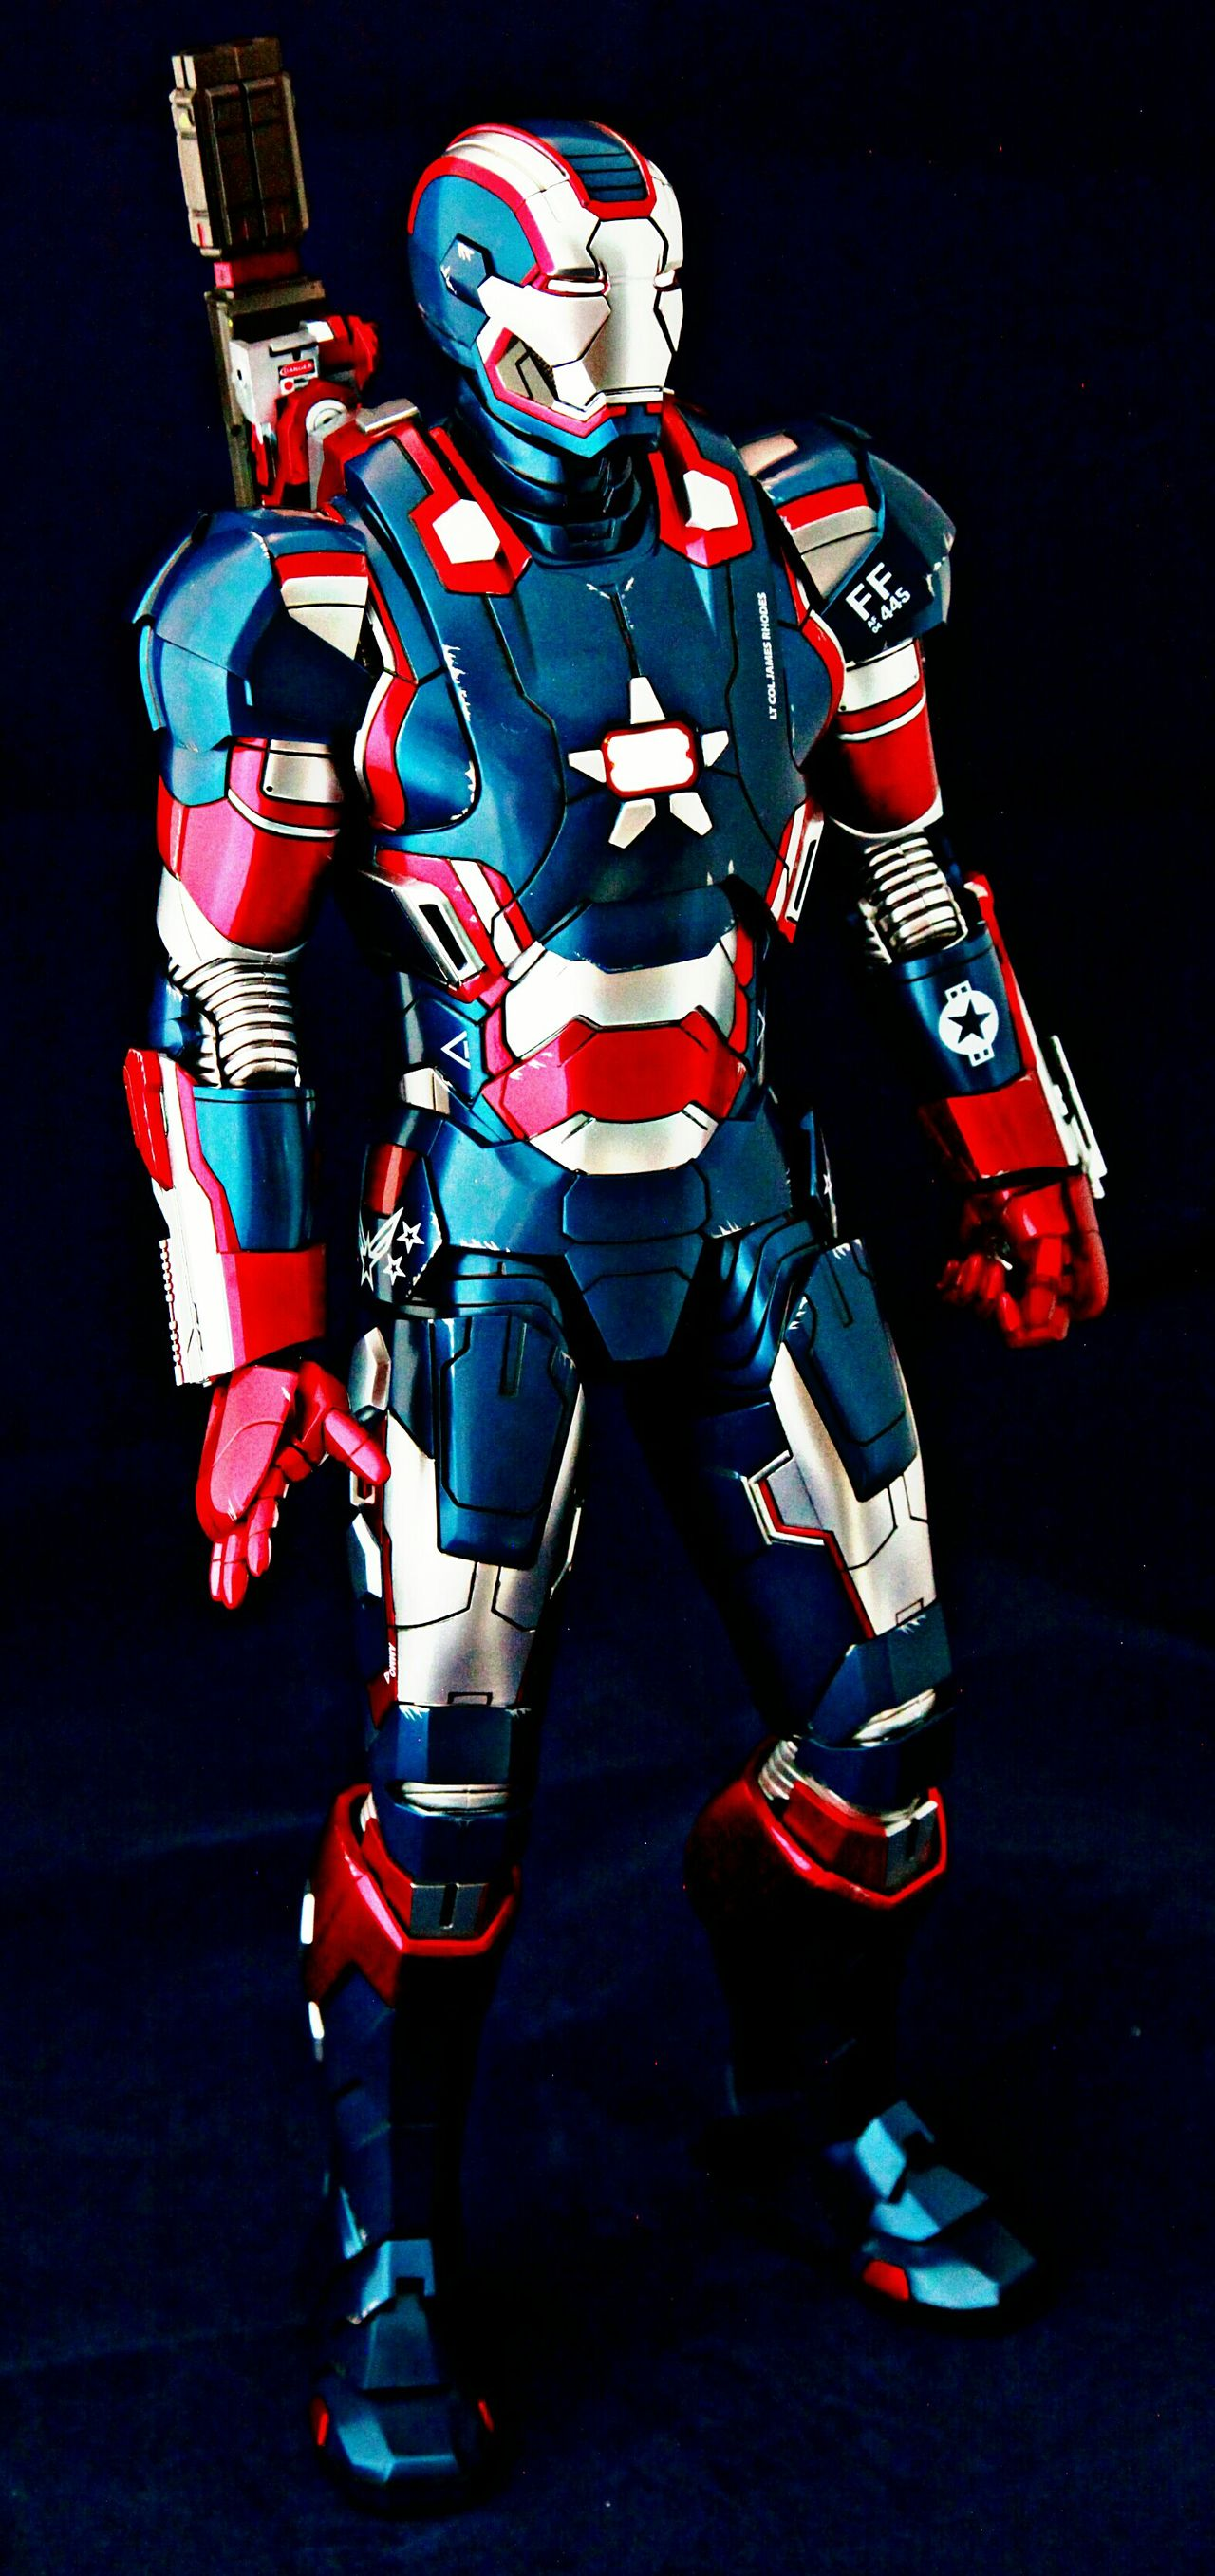 Ironman Hottoys Toyphotography Marvel Onesixthscale Housepartyprotocol Ironlegion IronPatriot Warmachine